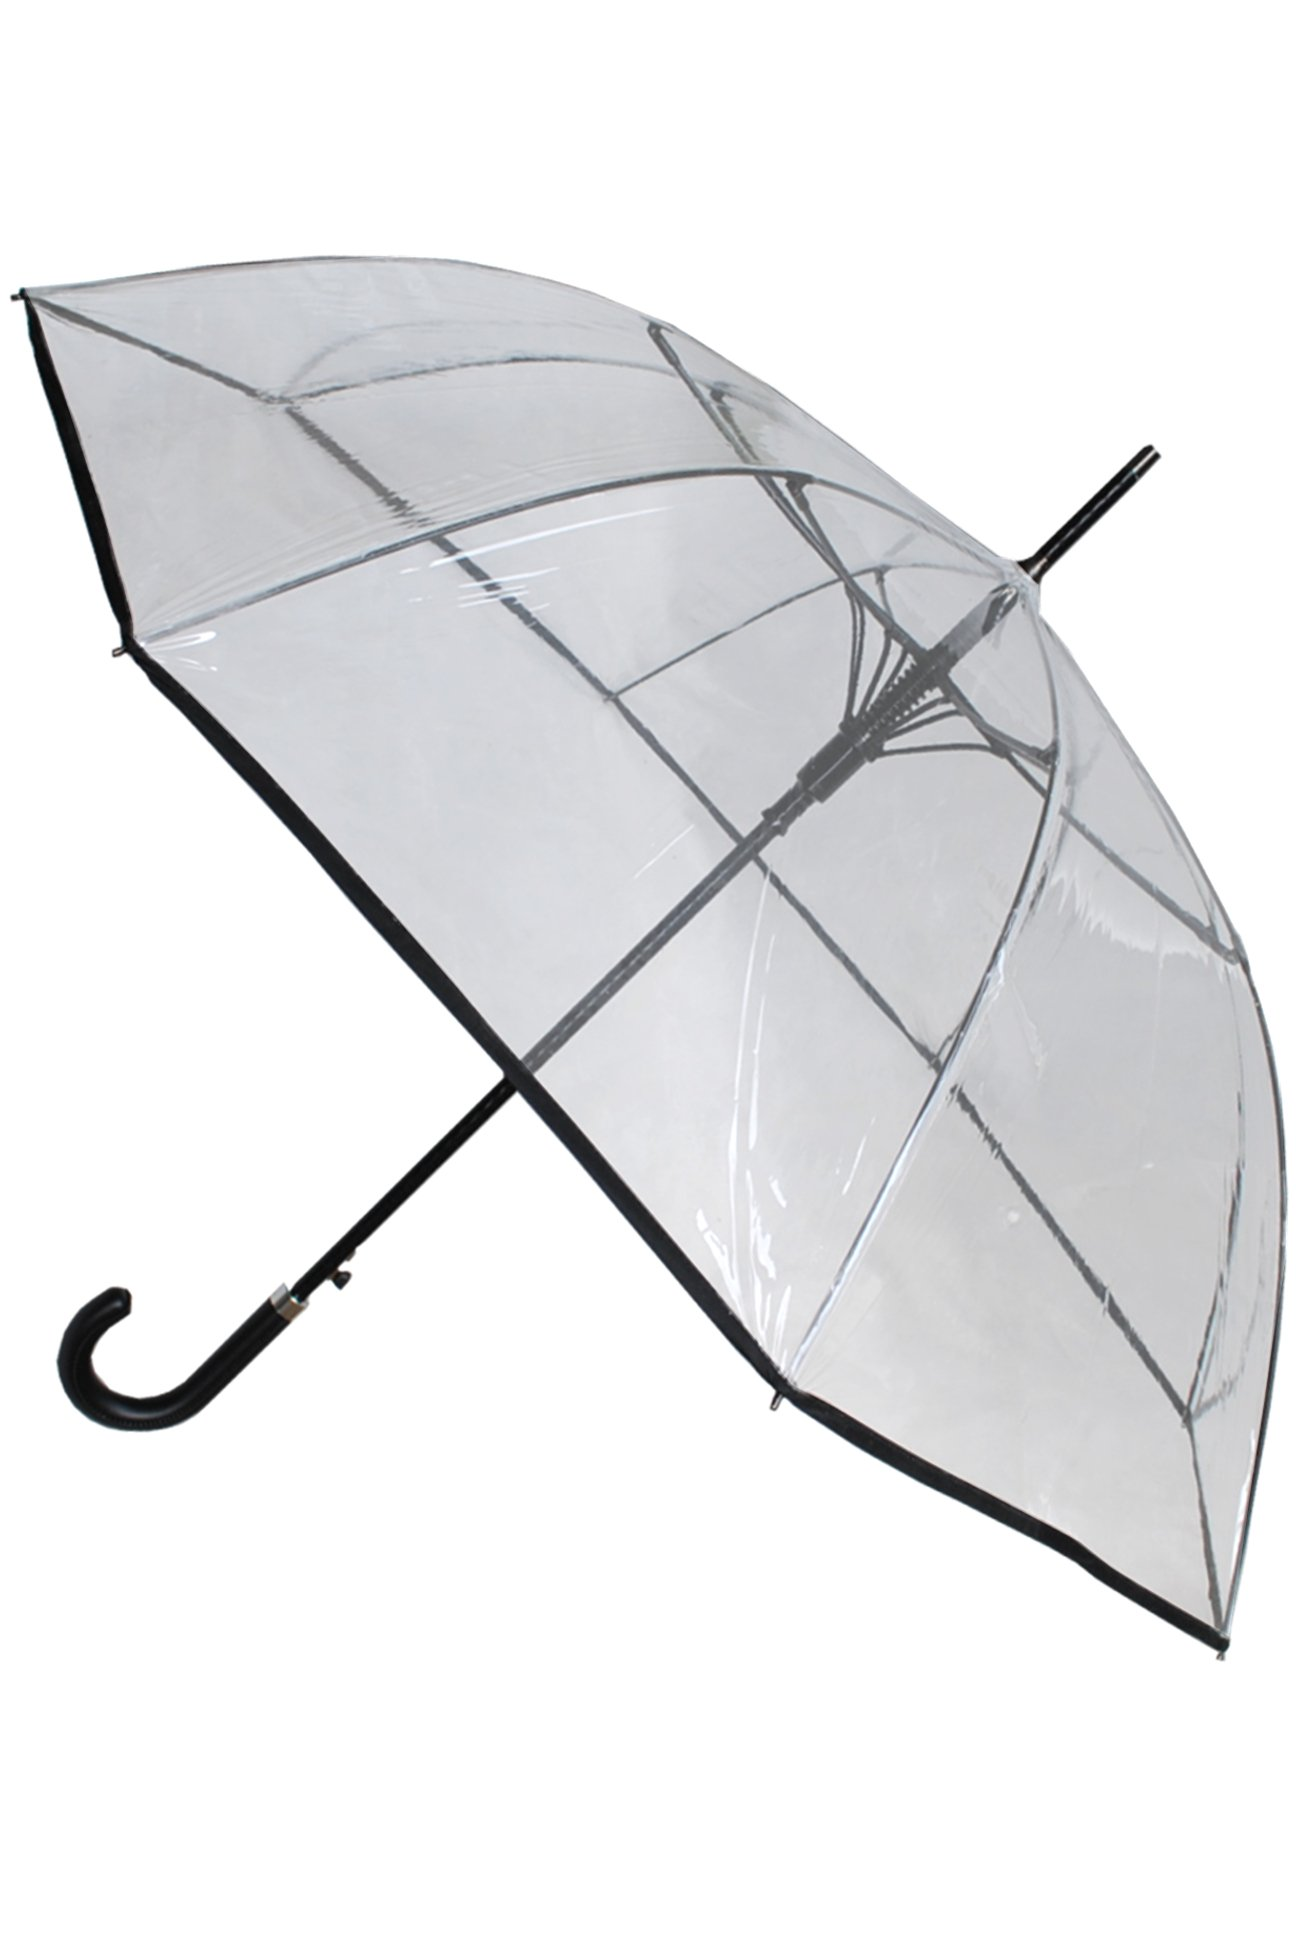 COLLAR AND CUFFS LONDON - Windproof 60MPH EXTRA STRONG - StormDefender Clear Canopy - 43in Diameter - Reinforced Fiberglass Frame Umbrella - Auto Open - Leather Style Hook Handle